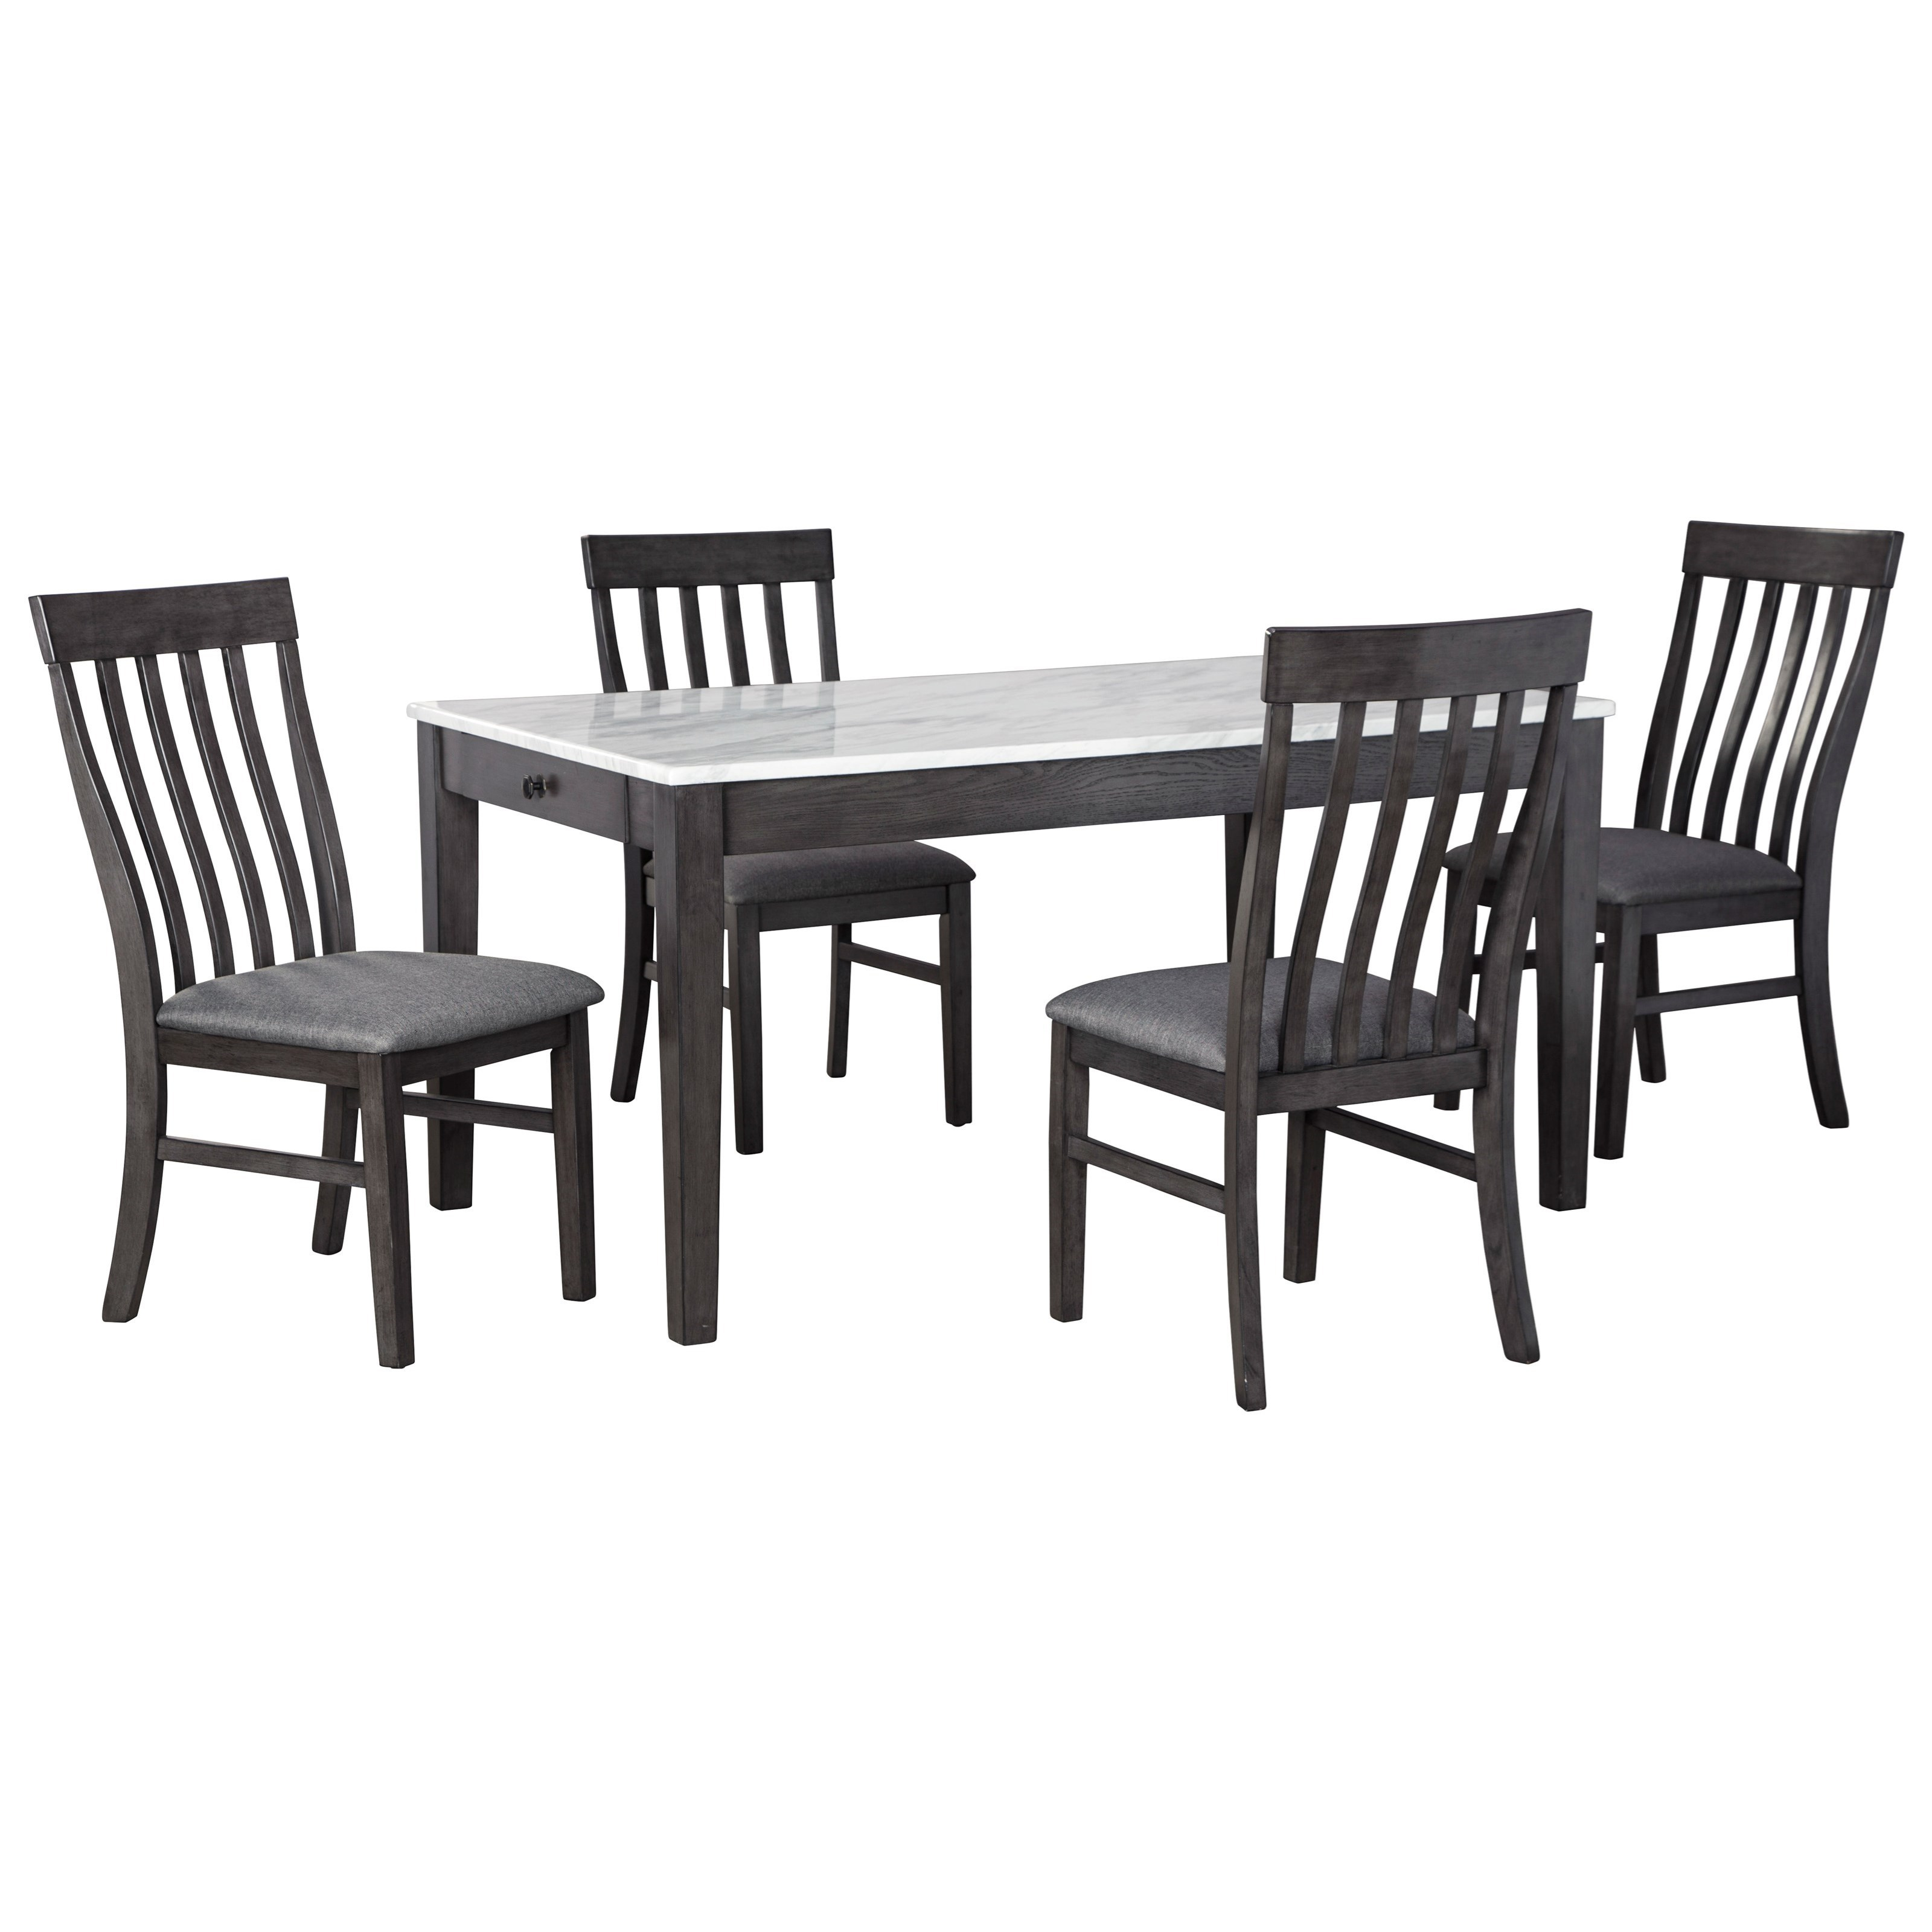 Luvoni 5-Piece Dining Set by Benchcraft at HomeWorld Furniture